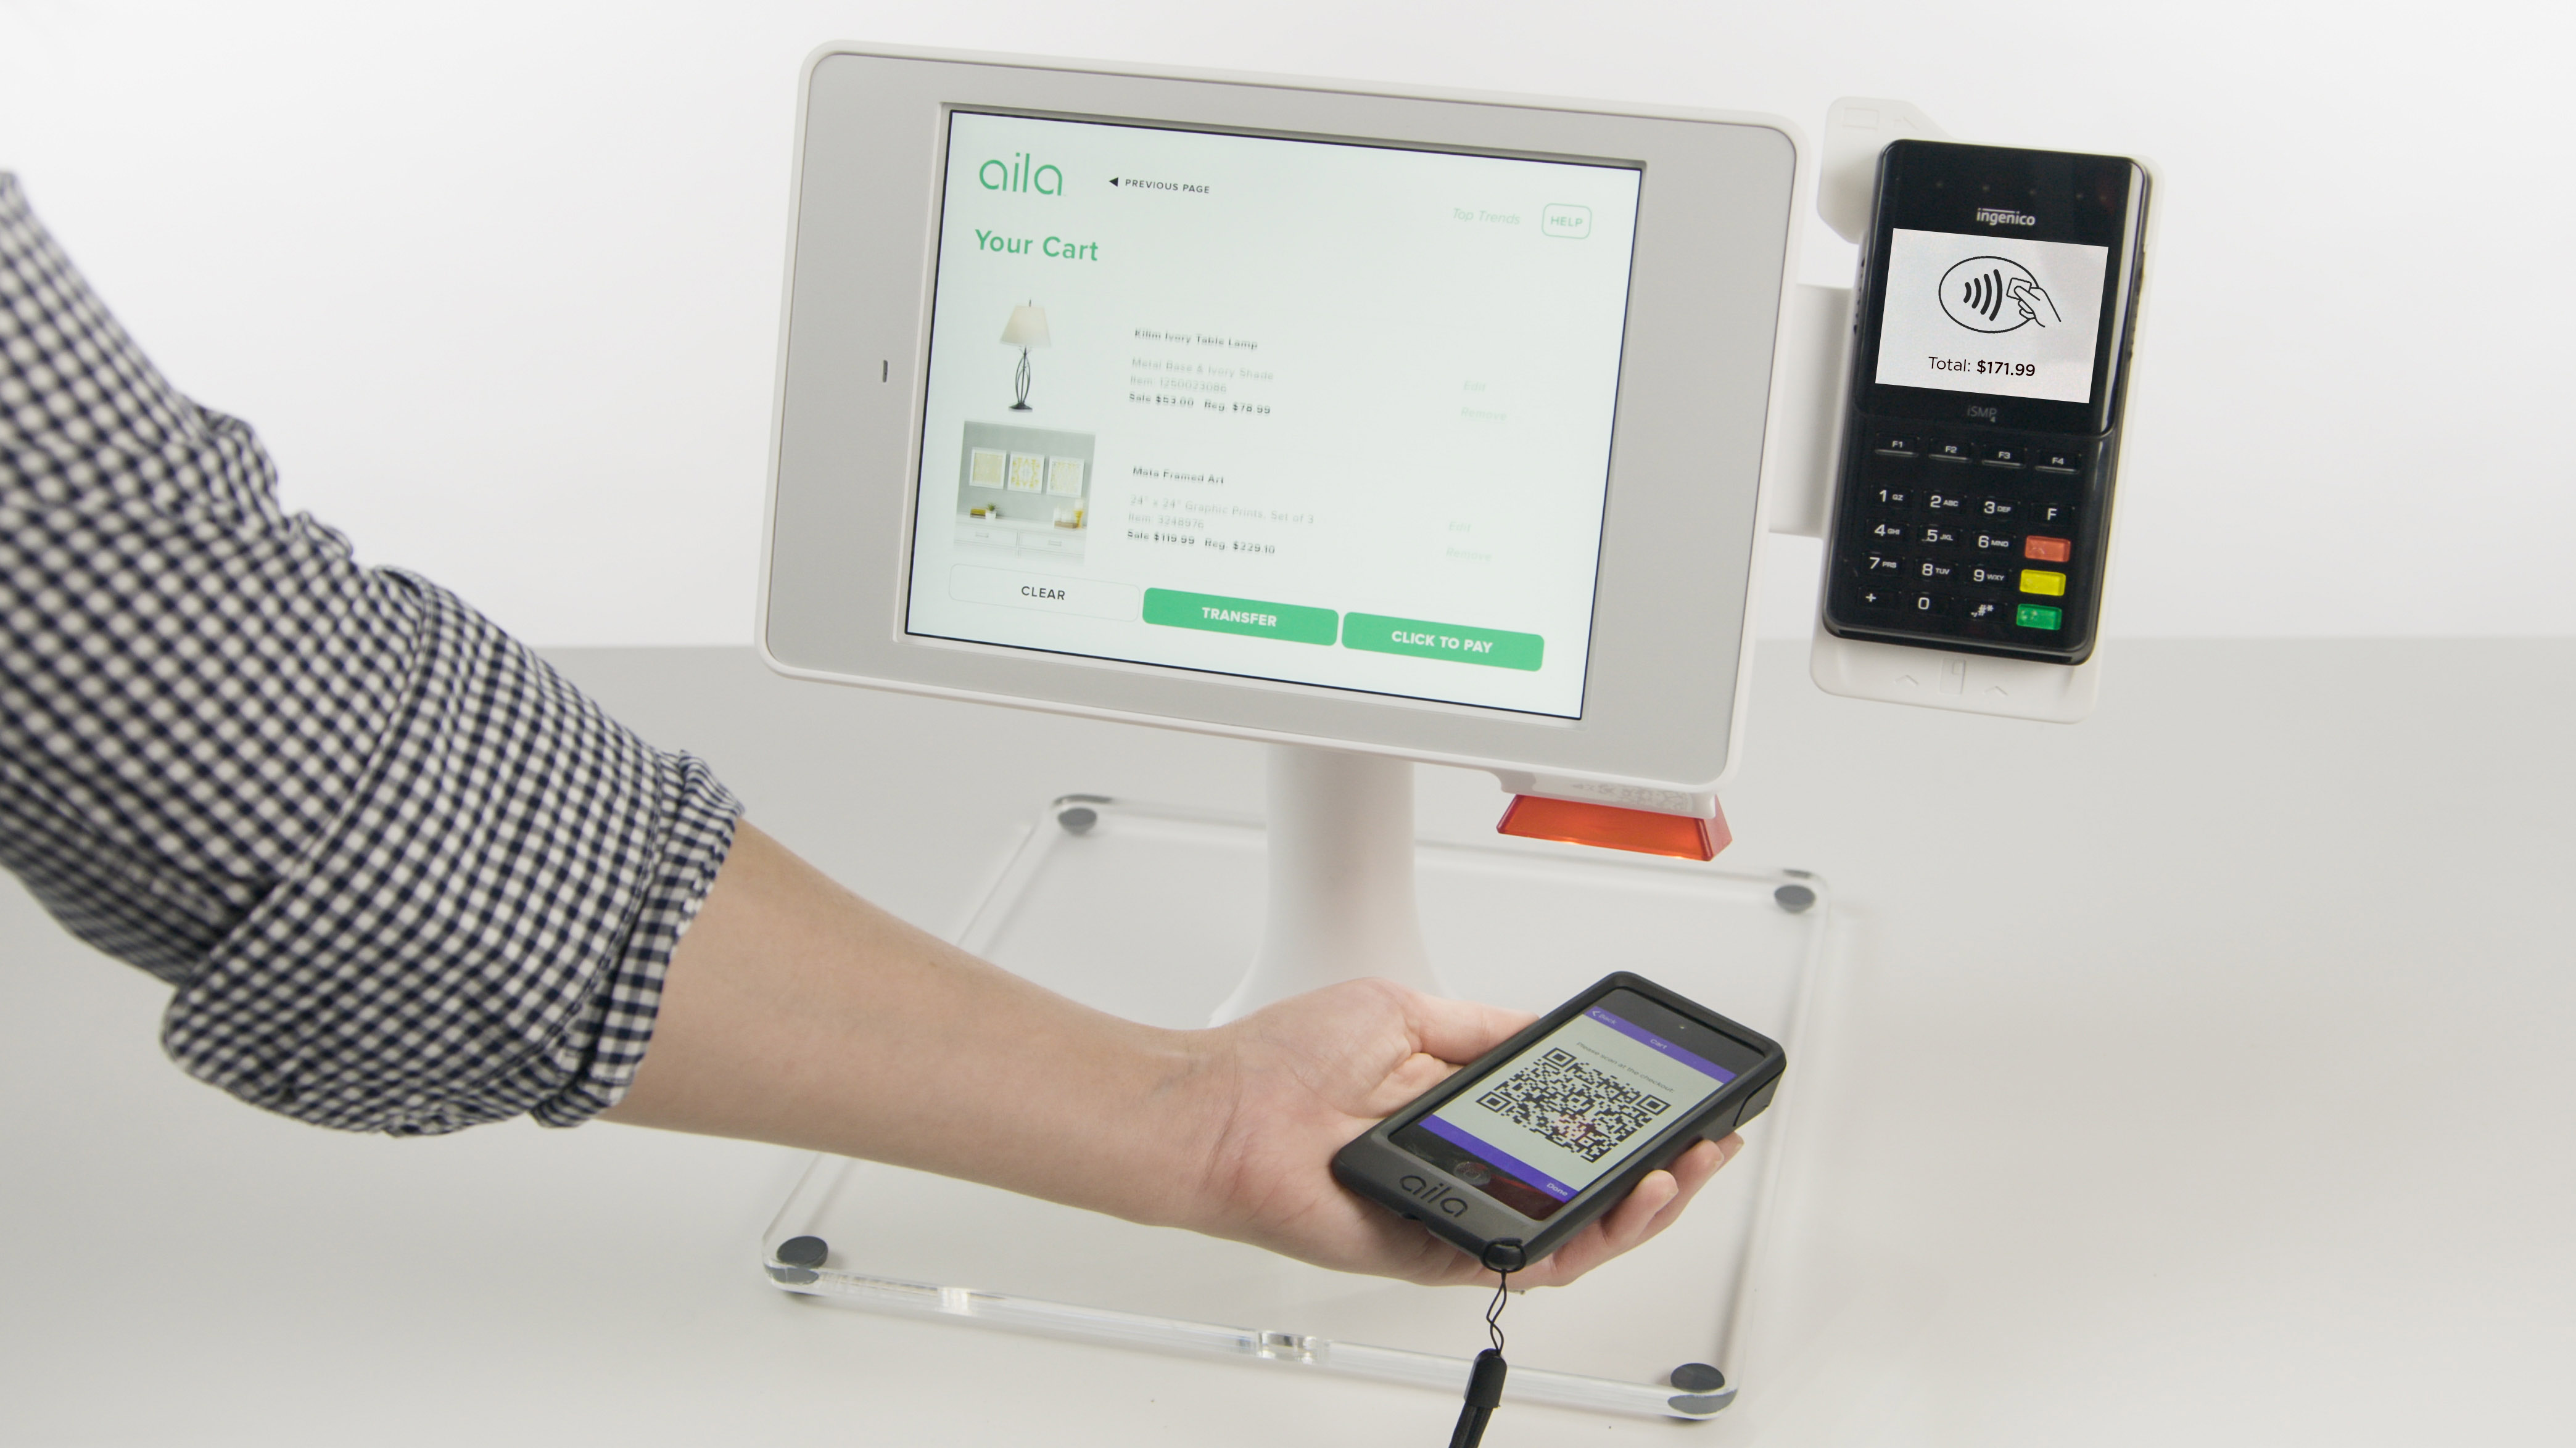 AIla's QR code mobile-to-kiosk cart transfer for payments.